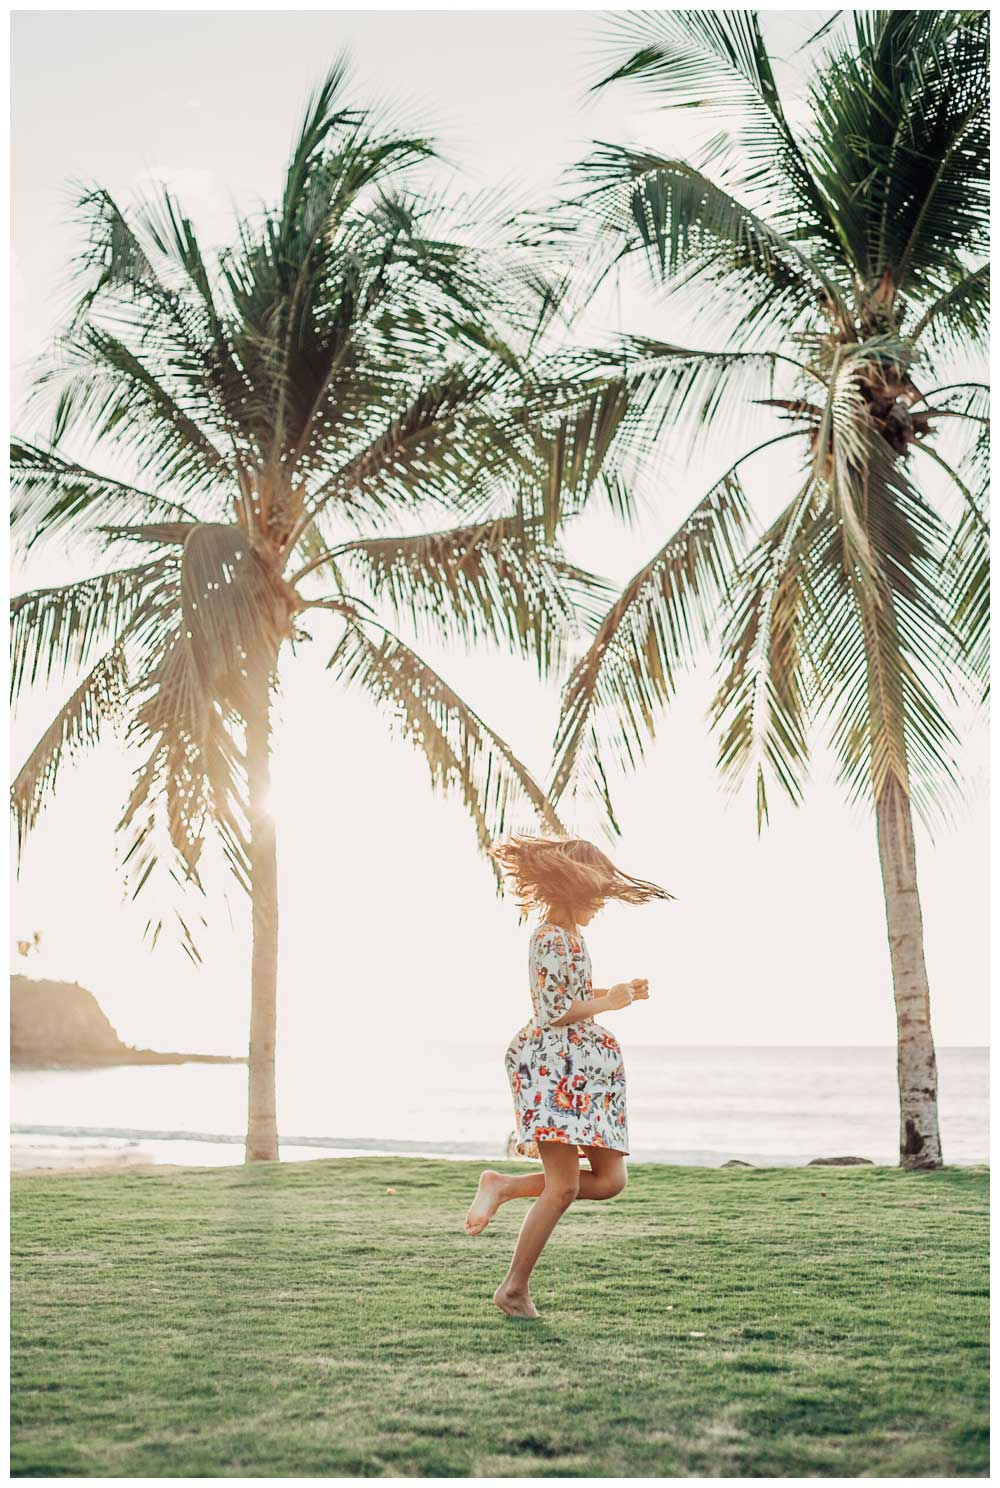 Girl dancing under palm trees in Playa Flamingo Costa Rica. Photographed by Kristen M. Brown, Samba to the Sea Photography.